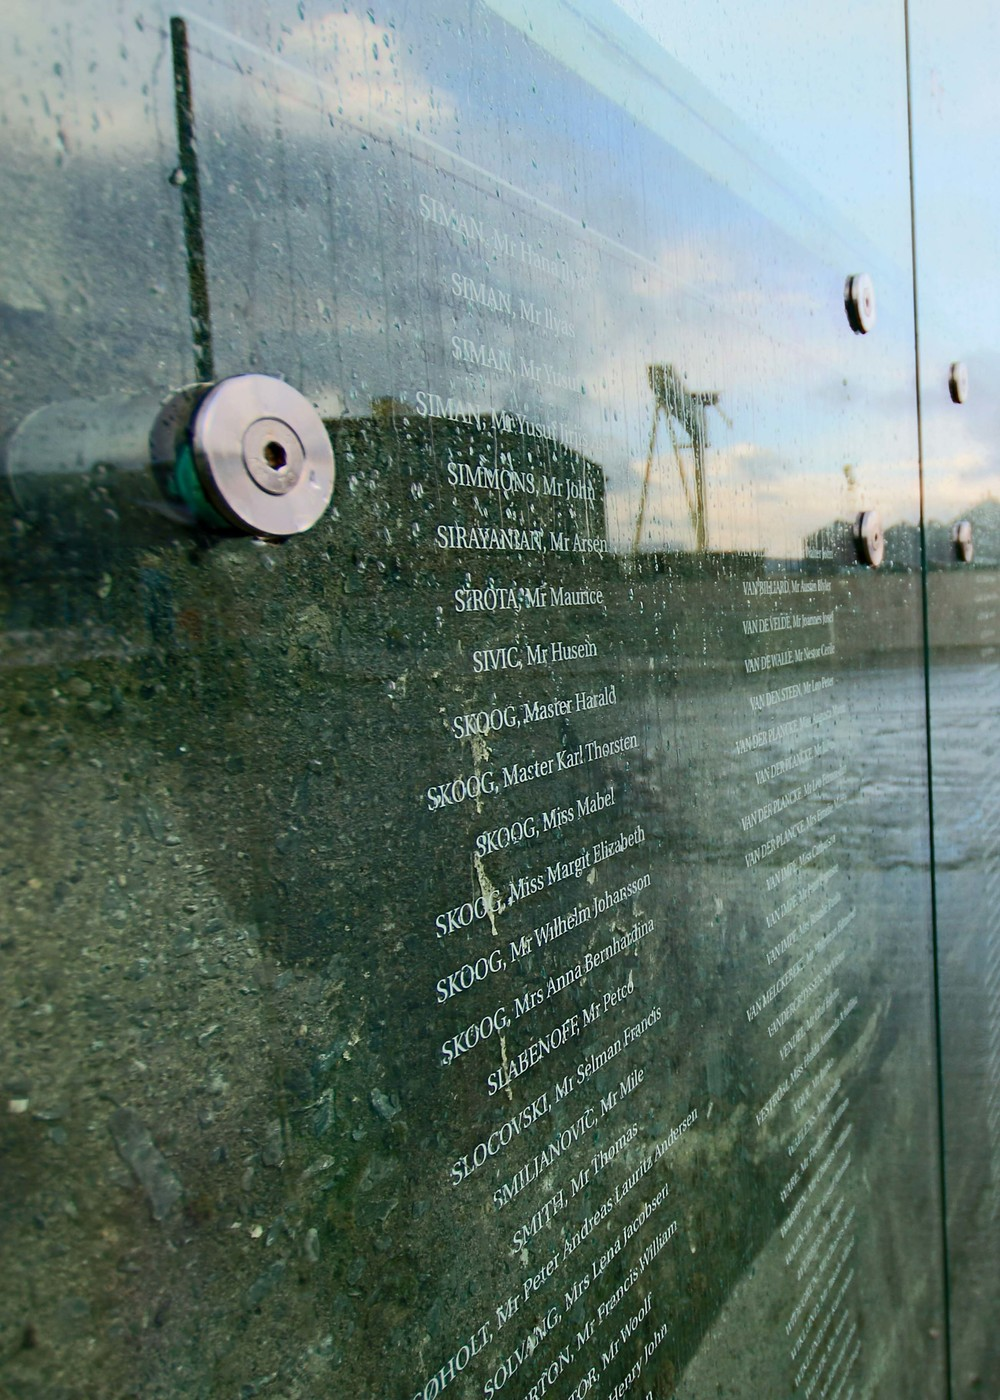 Moving monument to all those who lost their lives when the Titanic sank. The name of each victim is etched into the glass and this sits in the slipway where the Titanic, and other Olympic class ships were built and launched from.